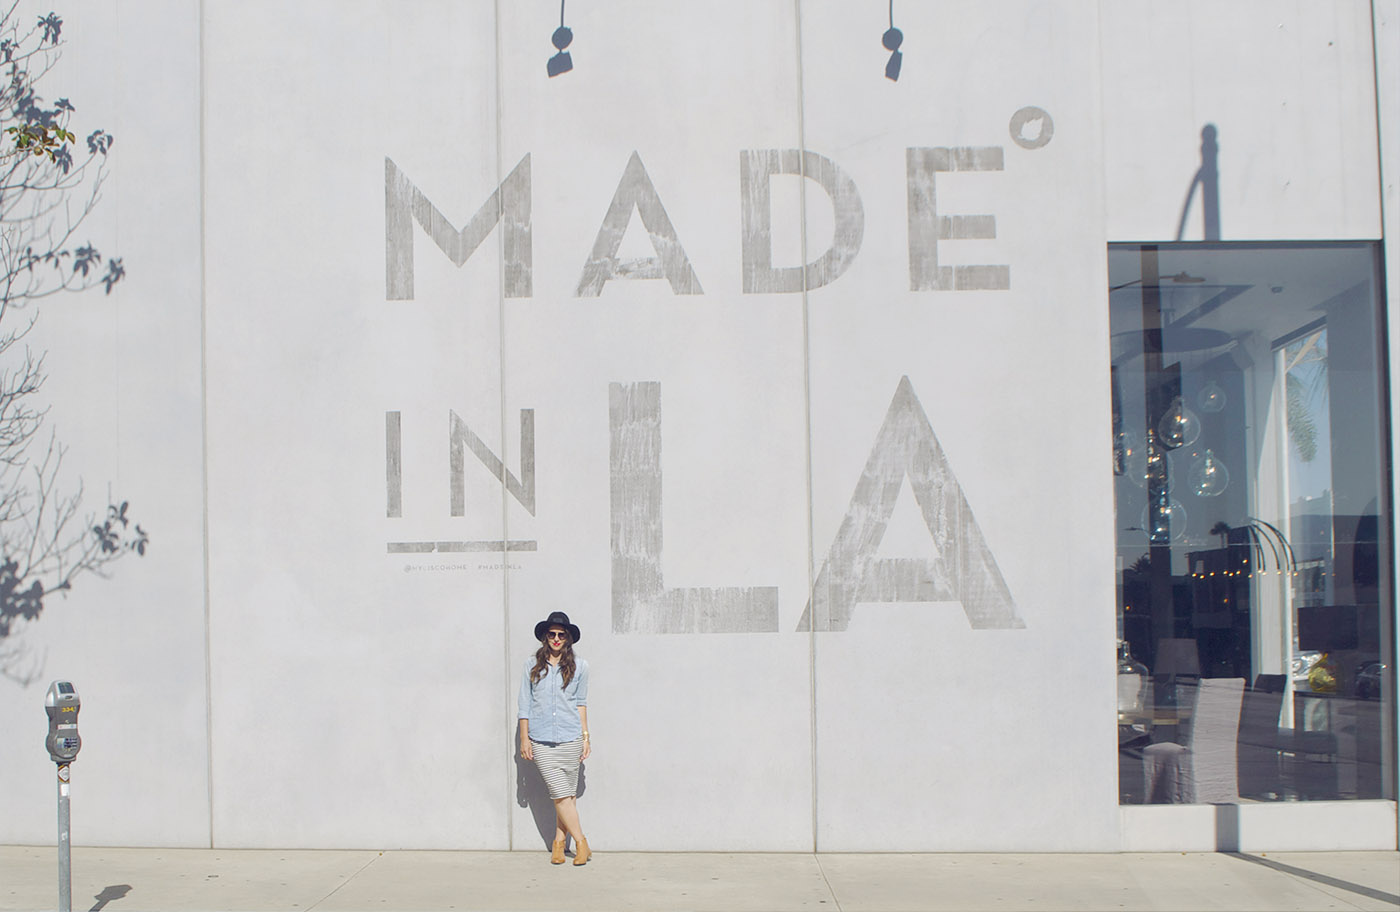 Made in LA sign